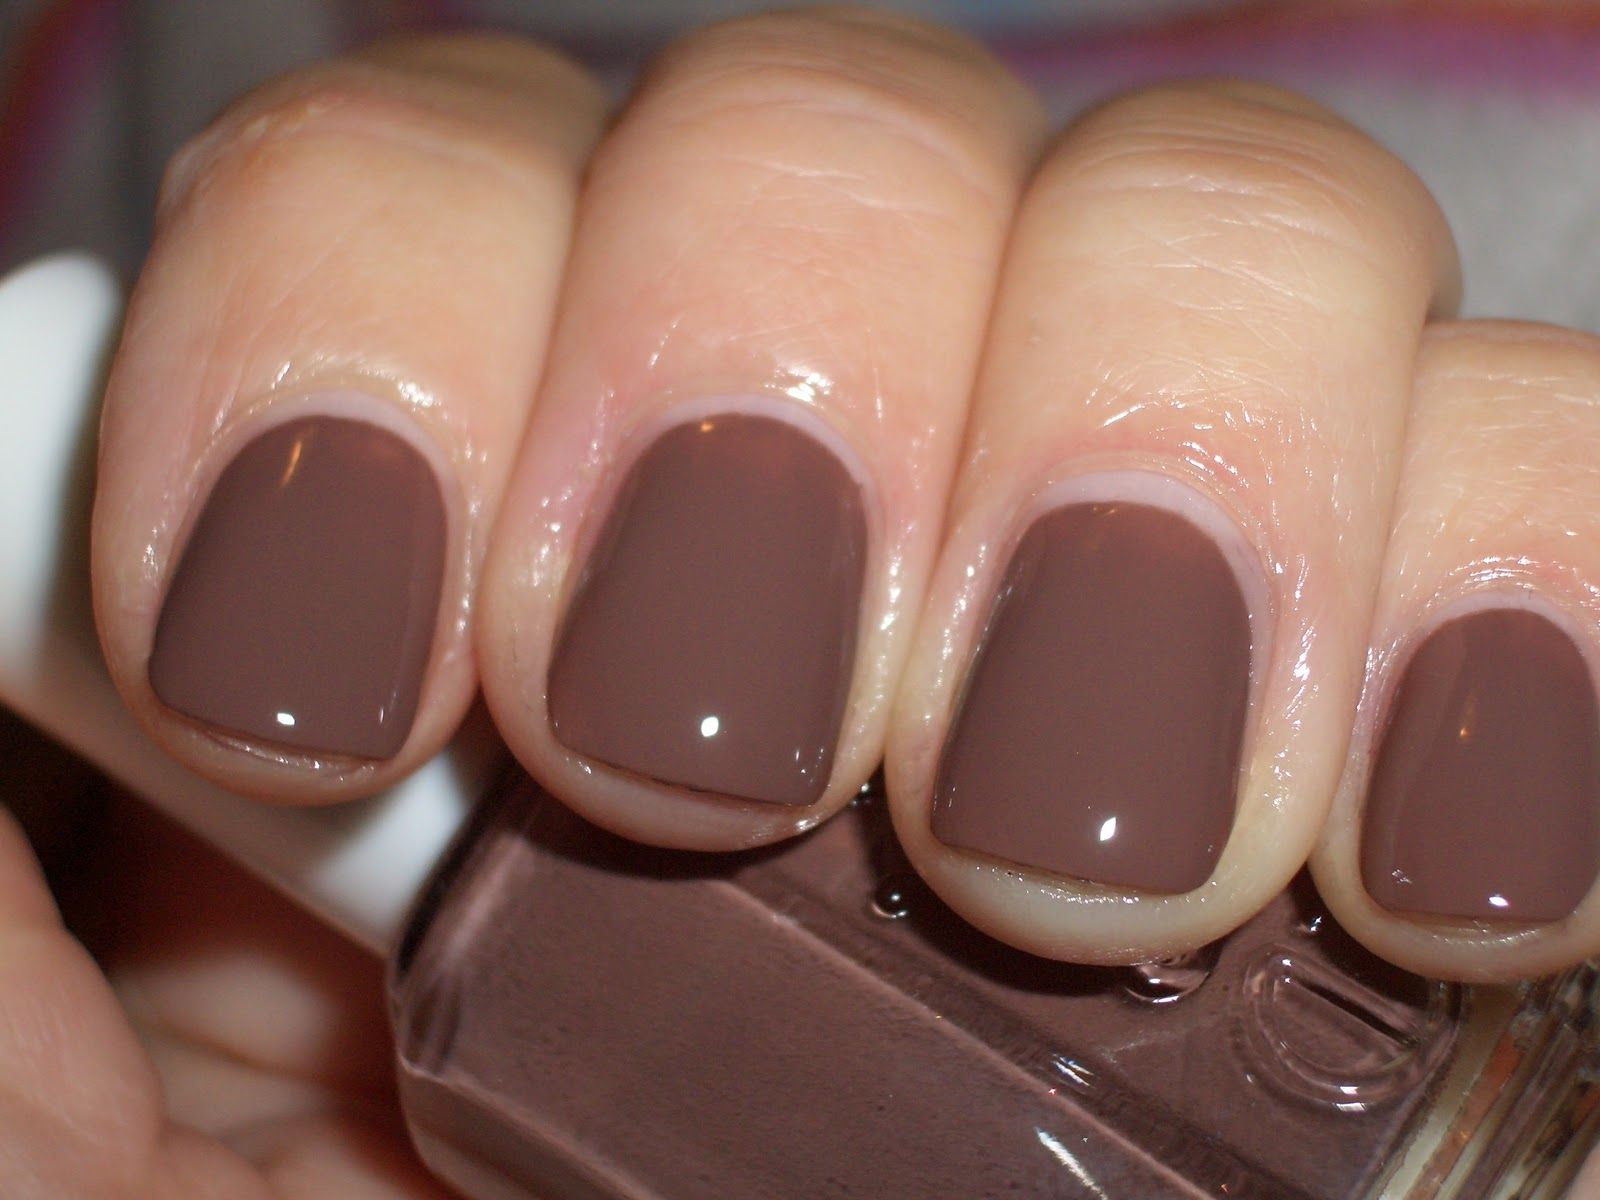 Essie Hot Cocoa. Great fall color on Essie